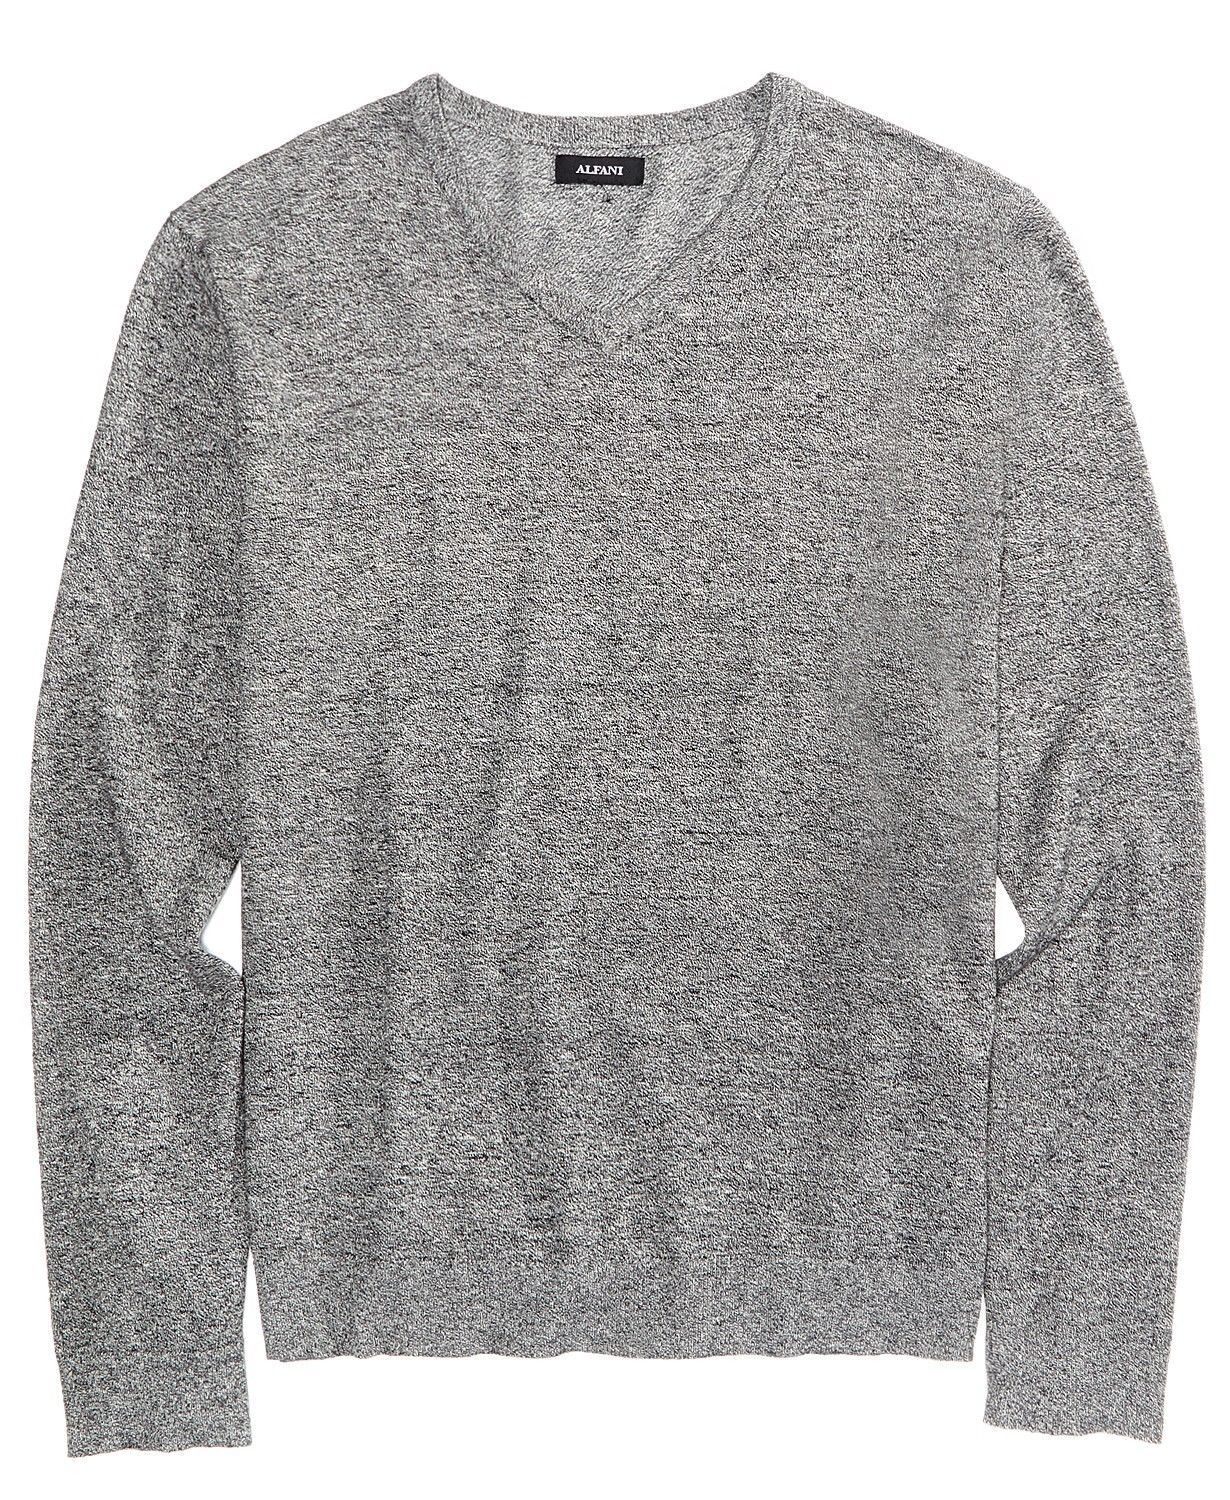 Alfani Men's V-Neck Sweater Zinc Heather Size X-Large